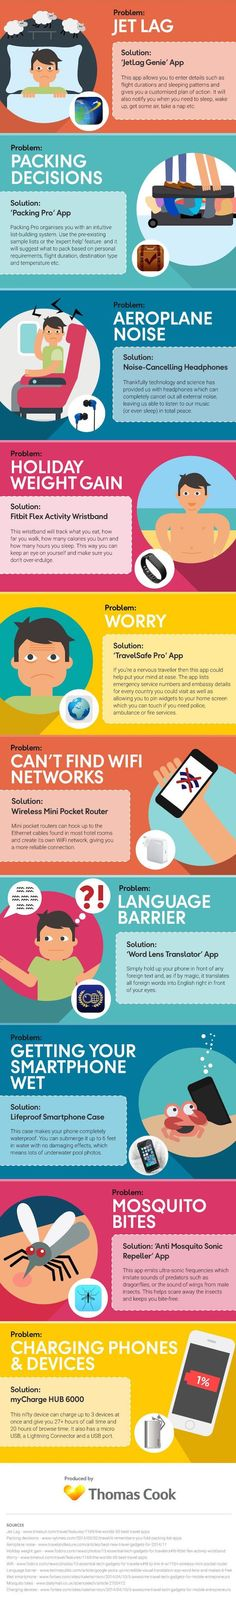 TRAVEL INFOGRAPHIC | Trip-saving Travel Technology. 10 TRAVEL PROBLEMS SOLVED BY TECHNOLOGY Whether you're taking a quick trip abroad or taking off with no return ticket, travelling is usually a happy affair. That is, unless you're the victim of a pesky problem, last minute headache or true travel tragedy that has cropped up when you least expected it. Read more on the blog